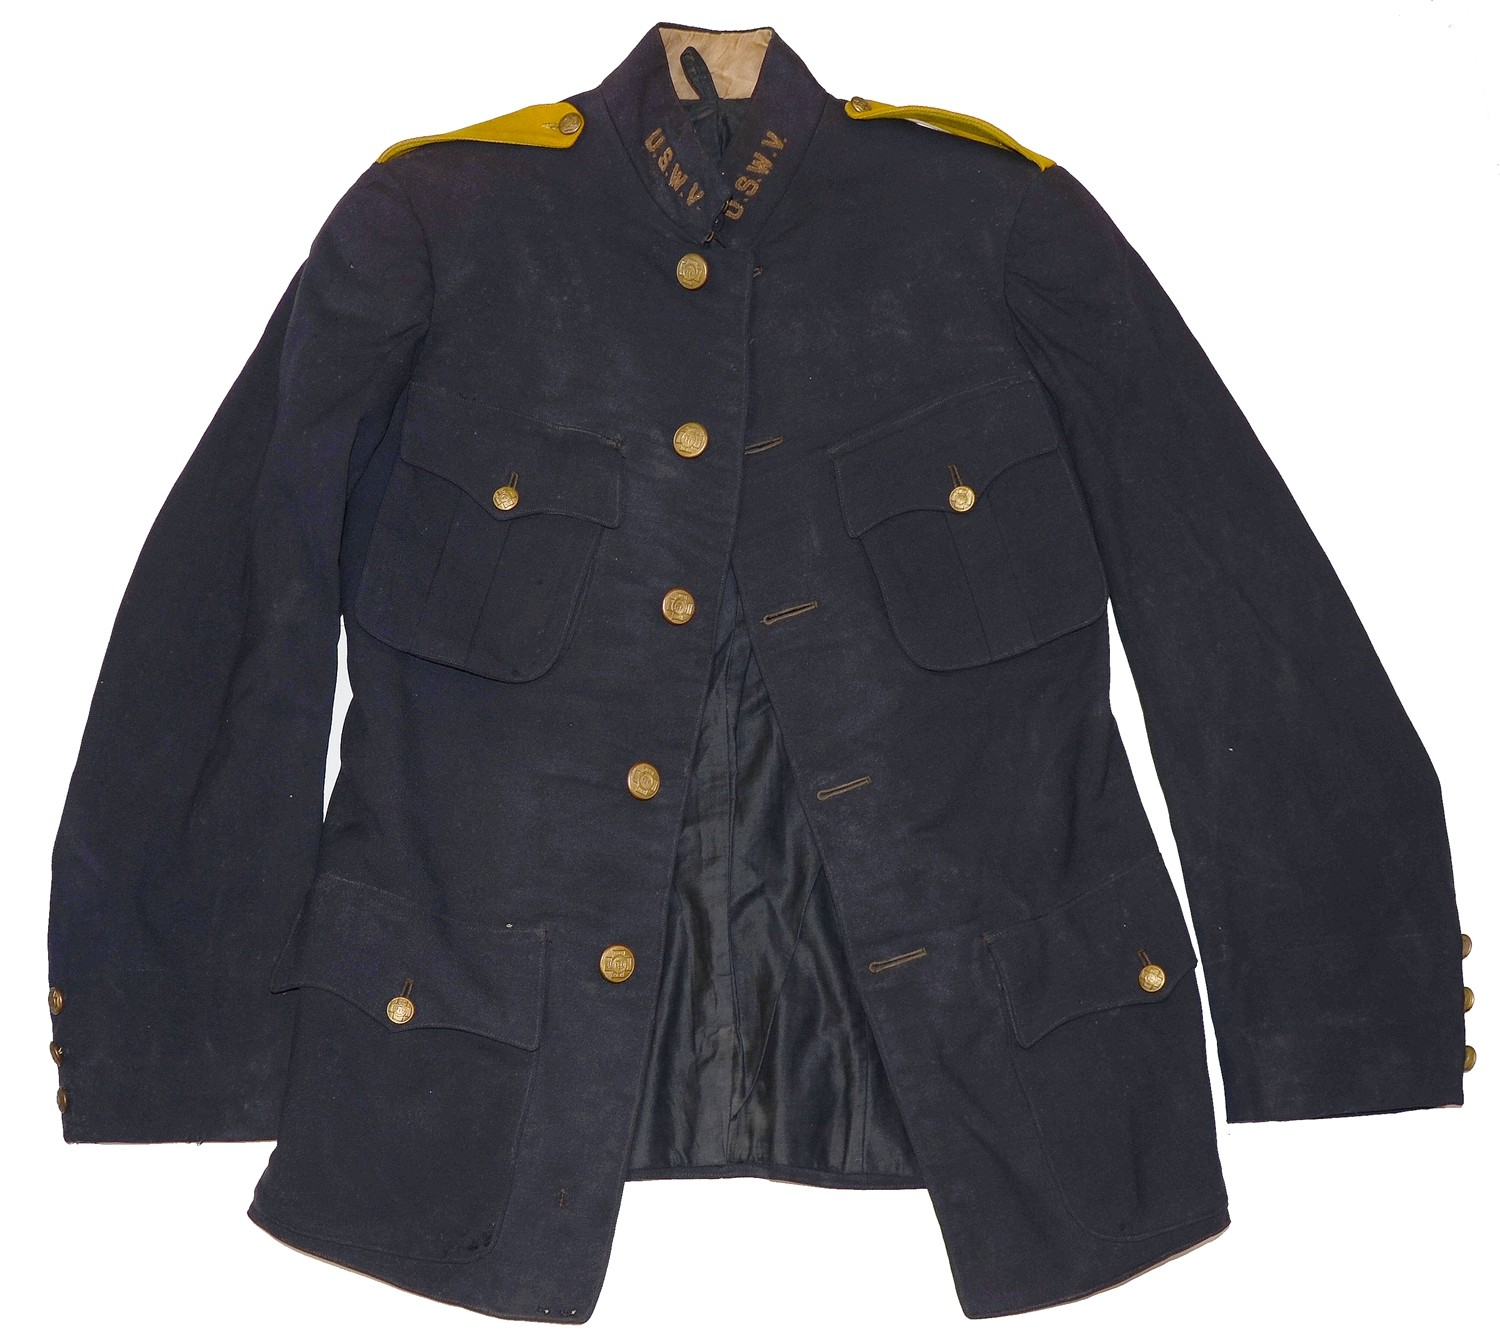 SPANISH AMERICAN WAR VETERANS UNIFORM